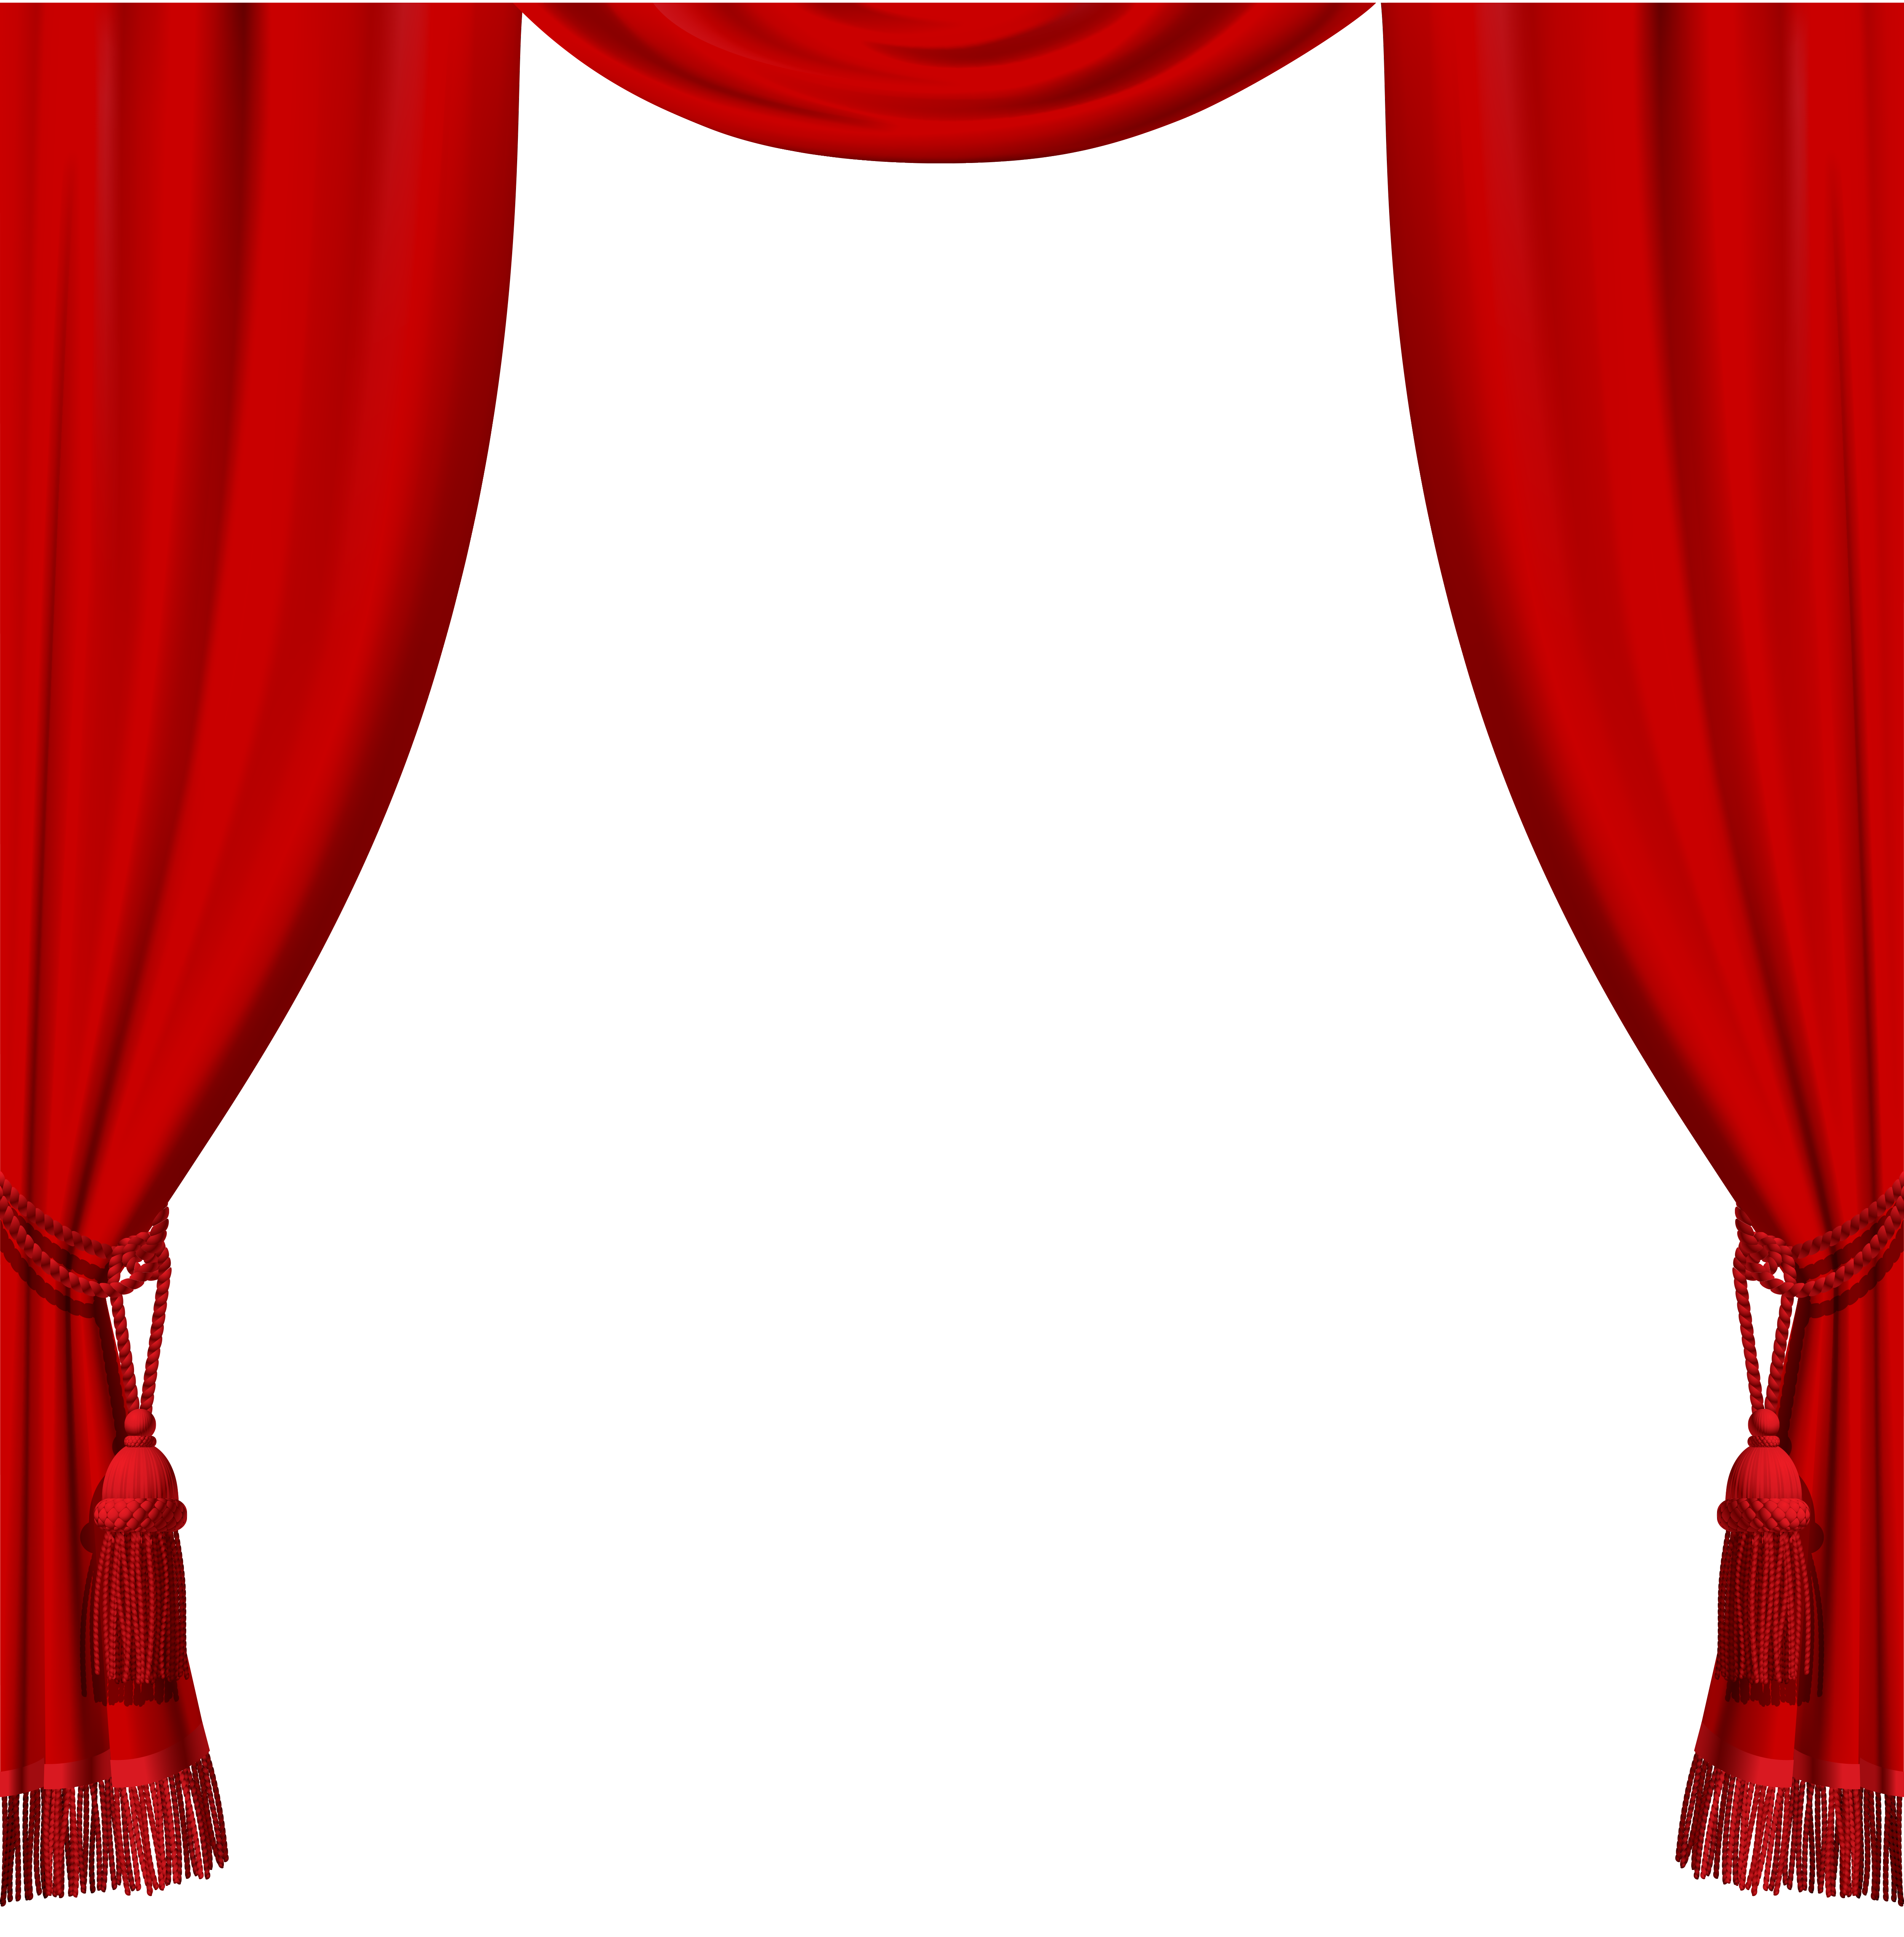 jpg royalty free stock Curtains clipart. Png images free download.